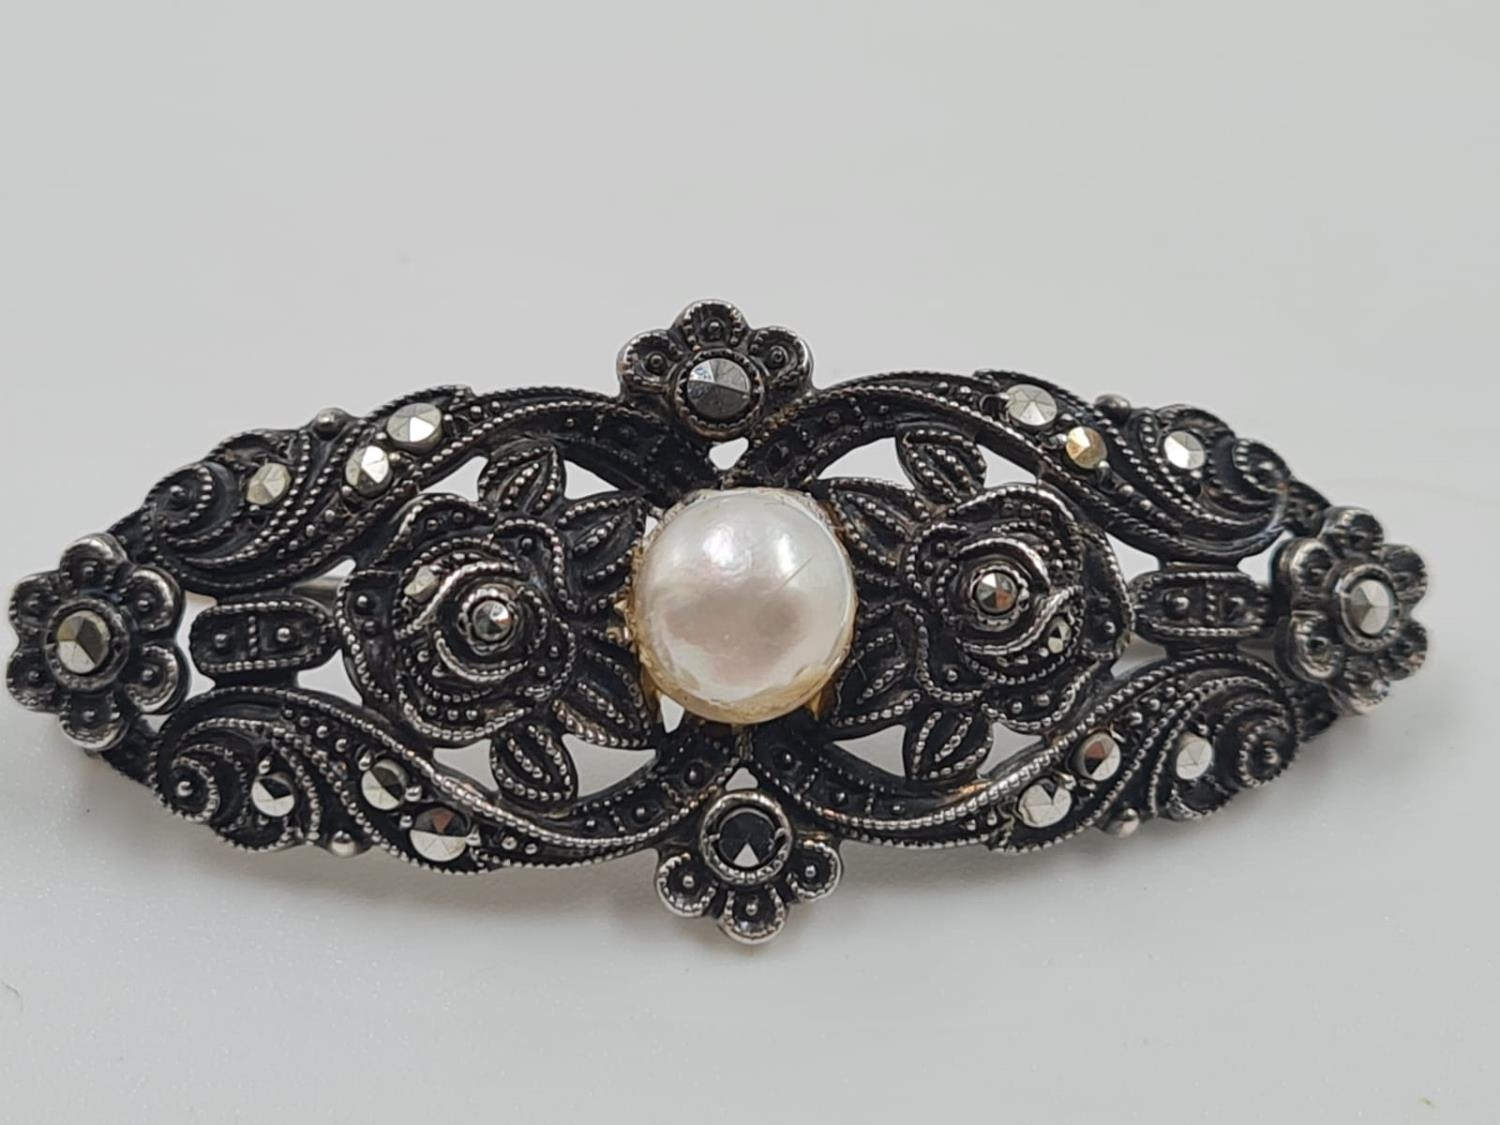 2 Silver Marcasite Brooches. One with a large Hamethyst the other a Pearl. 4cm. 18g total weight. - Image 4 of 5